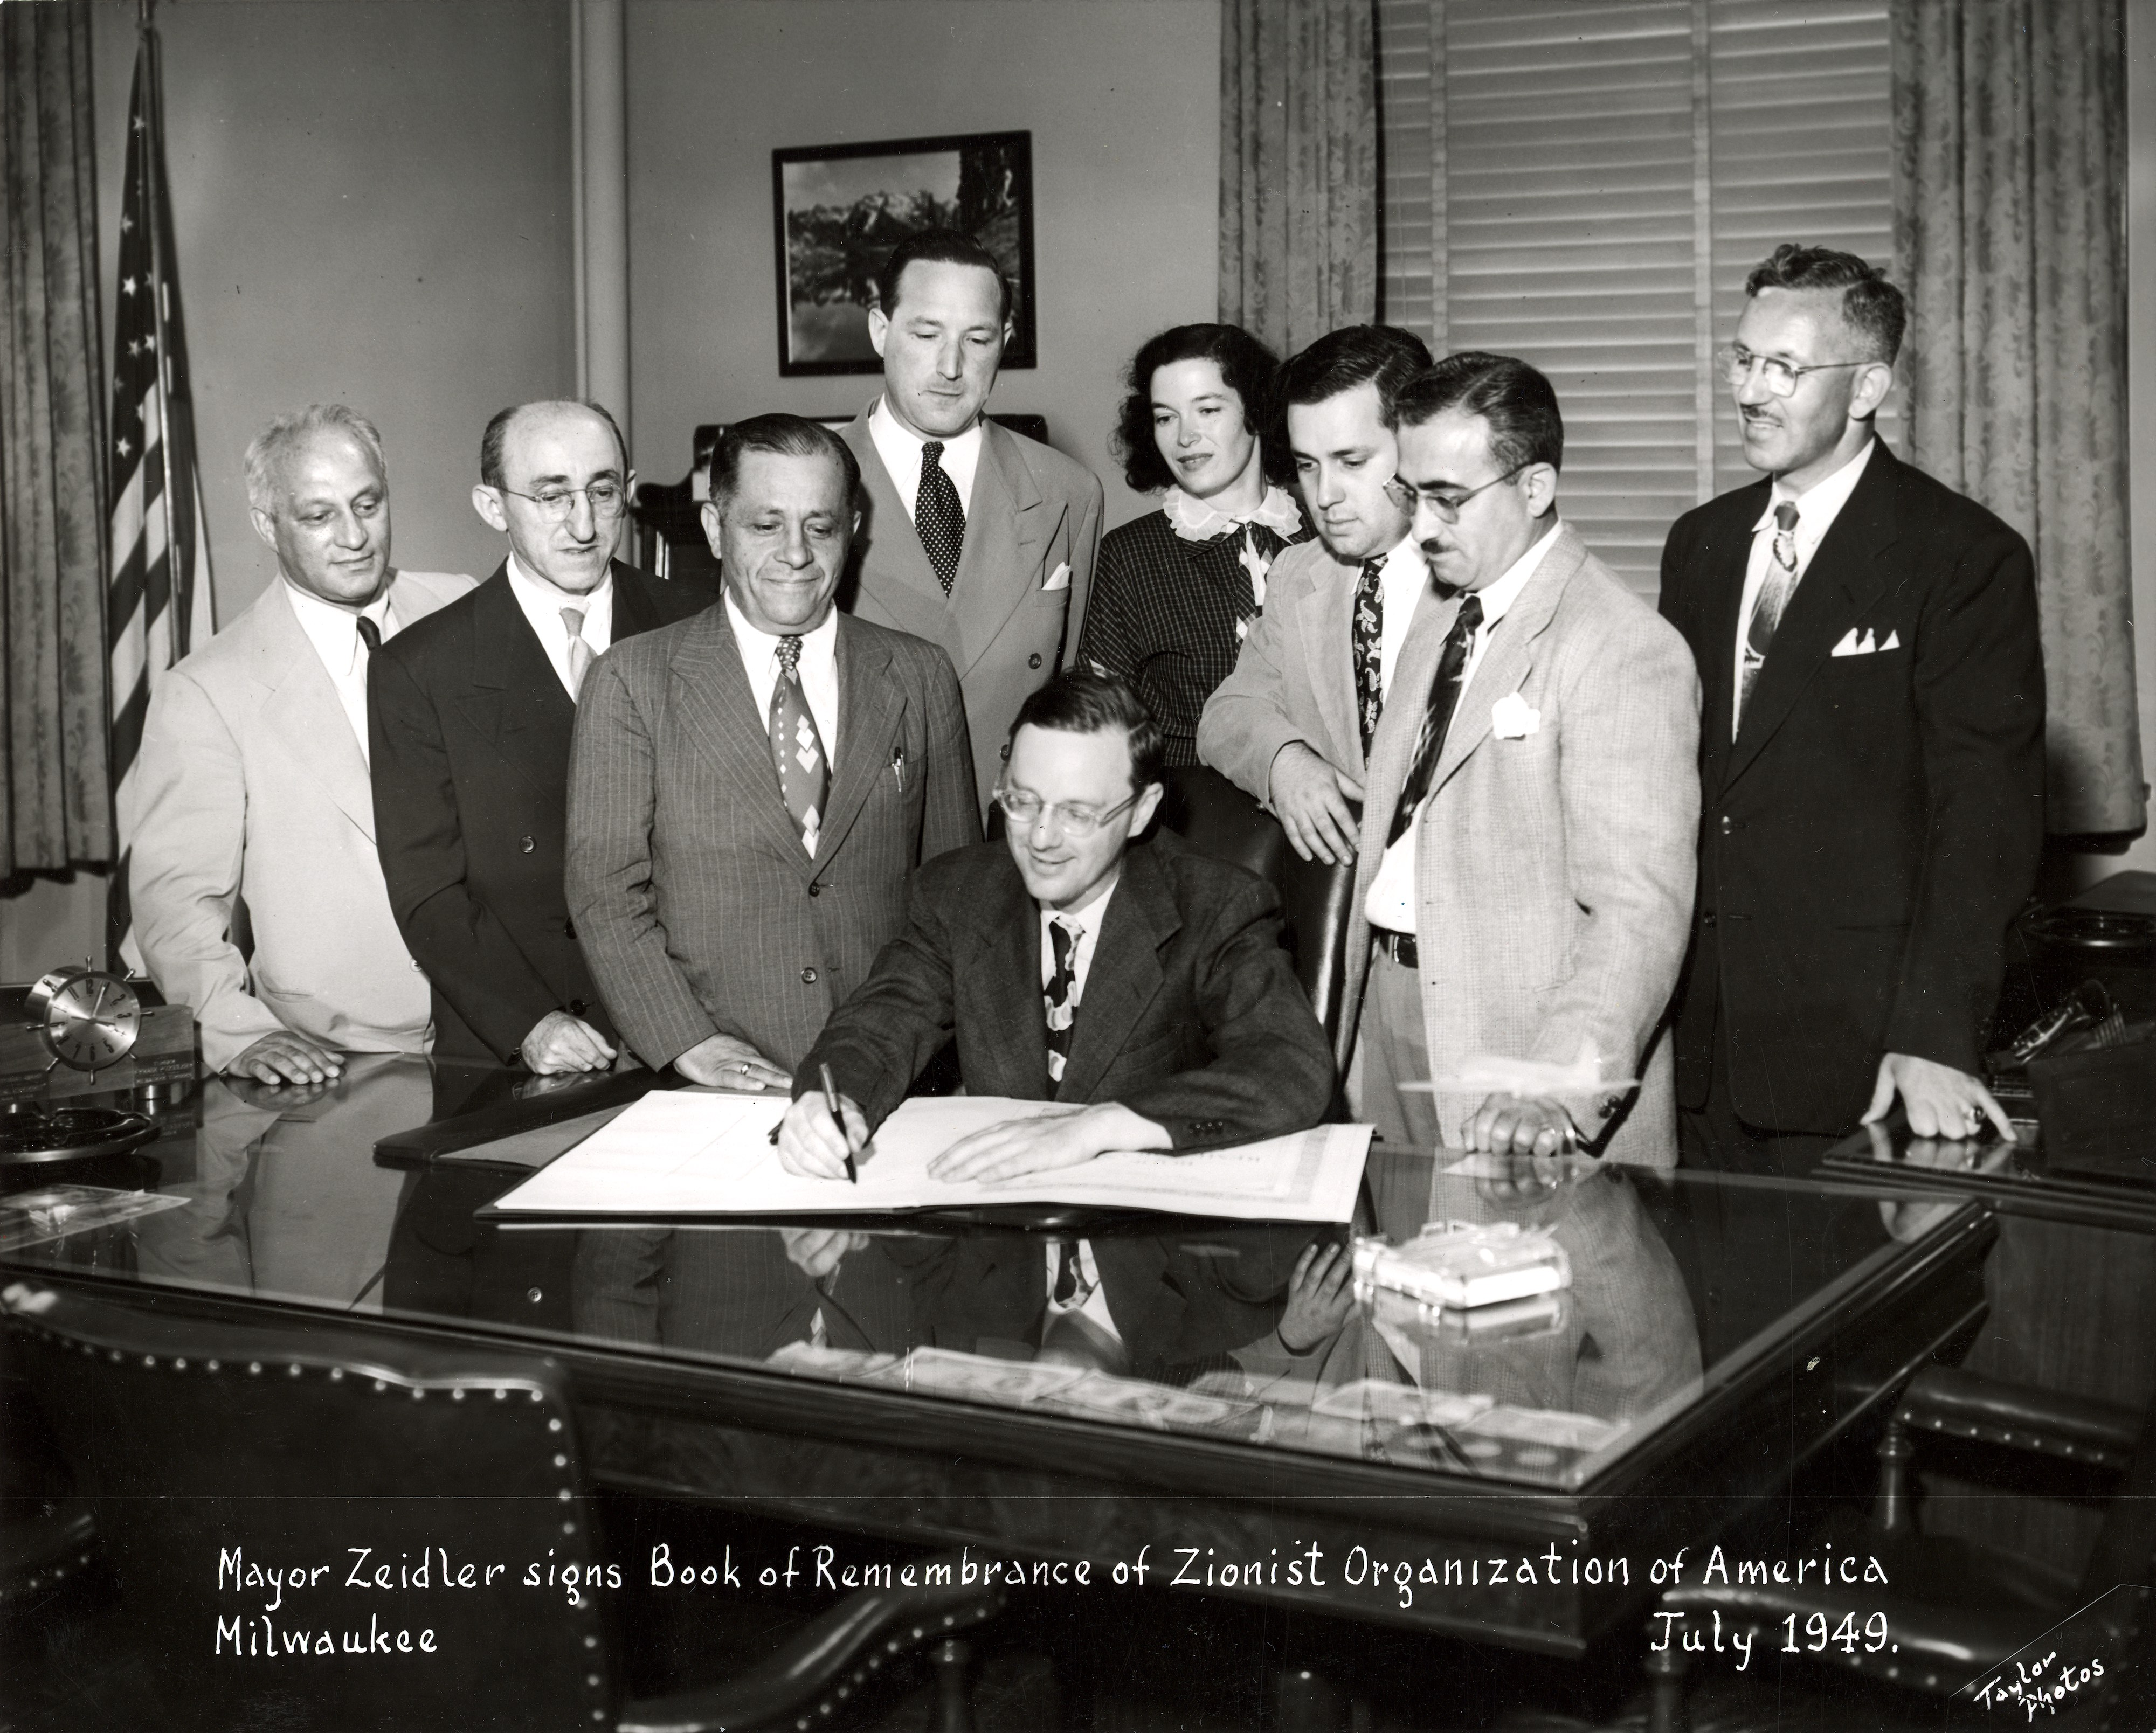 <table class=&quot;lightbox&quot;><tr><td colspan=2 class=&quot;lightbox-title&quot;>Frank Zeidler Signs Book of Remembrance</td></tr><tr><td colspan=2 class=&quot;lightbox-caption&quot;>Mayor Frank Zeidler signs a Book of Remembrance while members of the Zionist Organization of America look on in this 1949 photograph.</td></tr><tr><td colspan=2 class=&quot;lightbox-spacer&quot;></td></tr><tr class=&quot;lightbox-detail&quot;><td class=&quot;cell-title&quot;>Source: </td><td class=&quot;cell-value&quot;>From the Milwaukee Mayors Collection of the Milwaukee Public Library. Reprinted with permission.<br /><a href=&quot;http://content.mpl.org/cdm/singleitem/collection/MilwMayors/id/112/rec/8&quot; target=&quot;_blank&quot;>Milwaukee Public Library</a></td></tr><tr class=&quot;filler-row&quot;><td colspan=2>&nbsp;</td></tr></table>